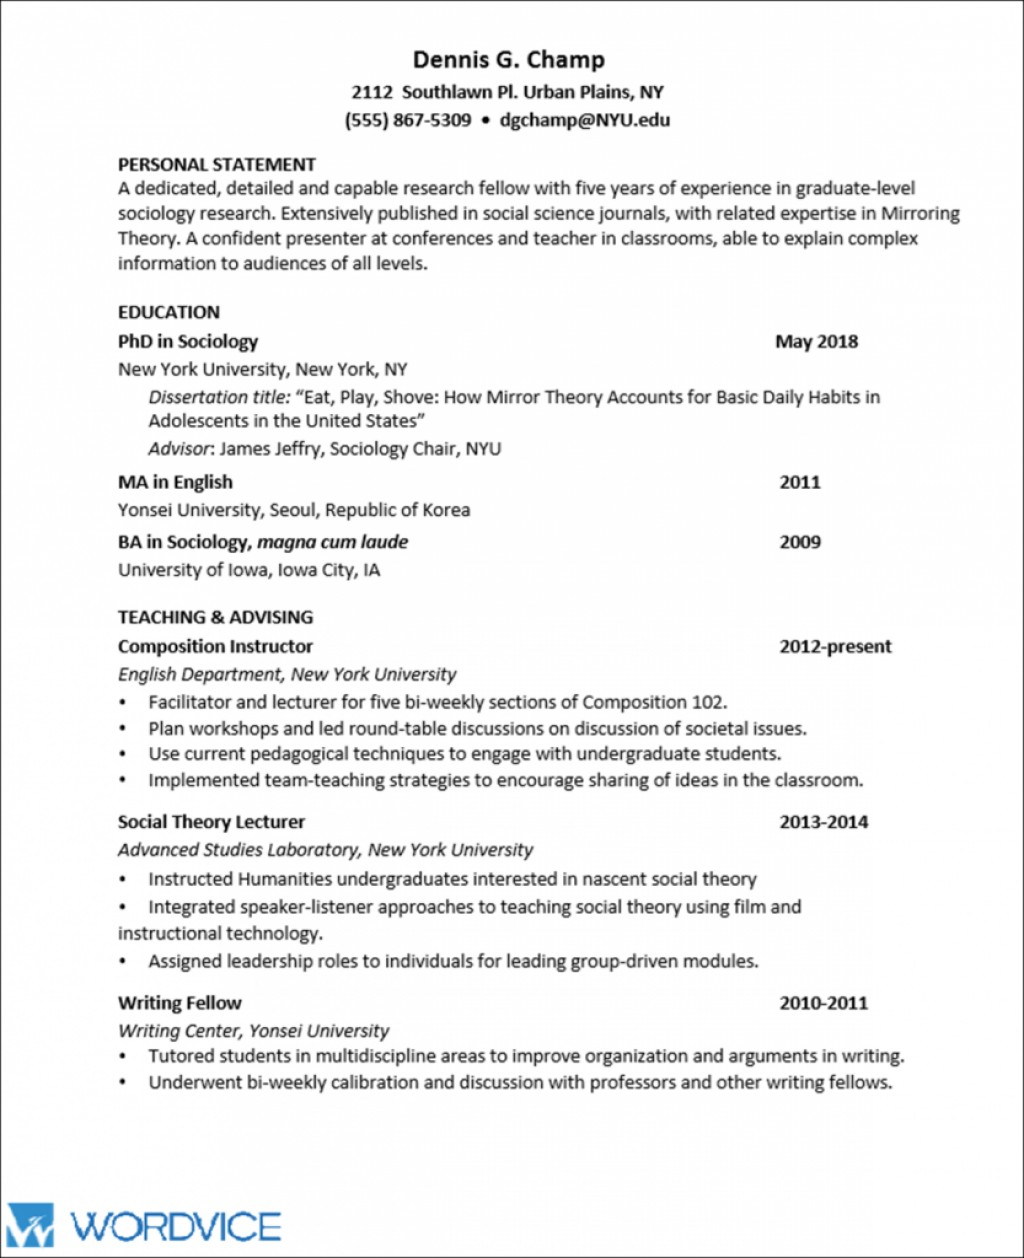 010 How To Publish Research Paper Without Professor Academic Cv Graphic2 Striking A Large